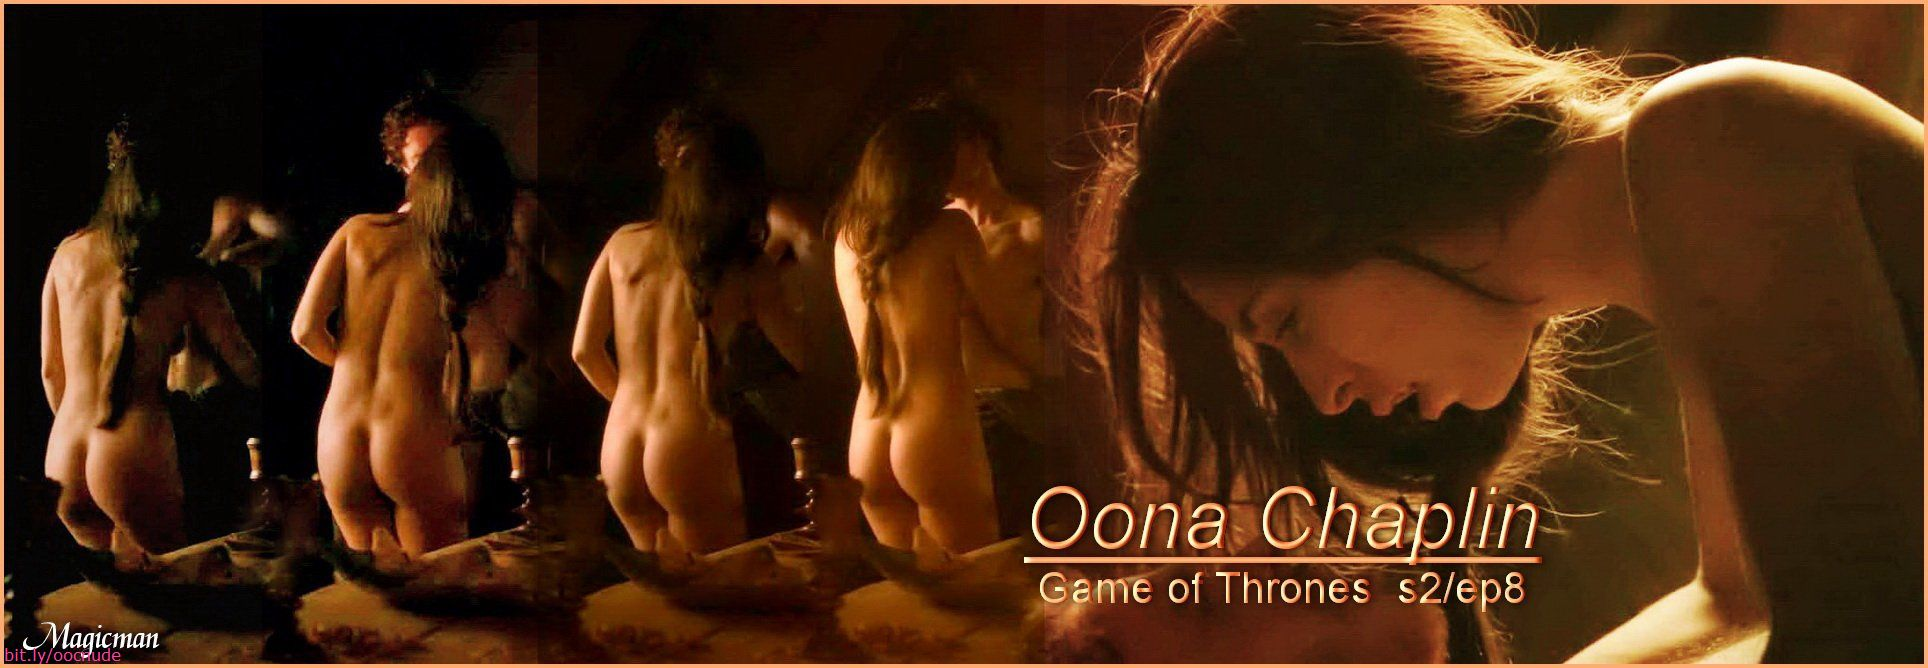 Oona chaplin game of thrones nude